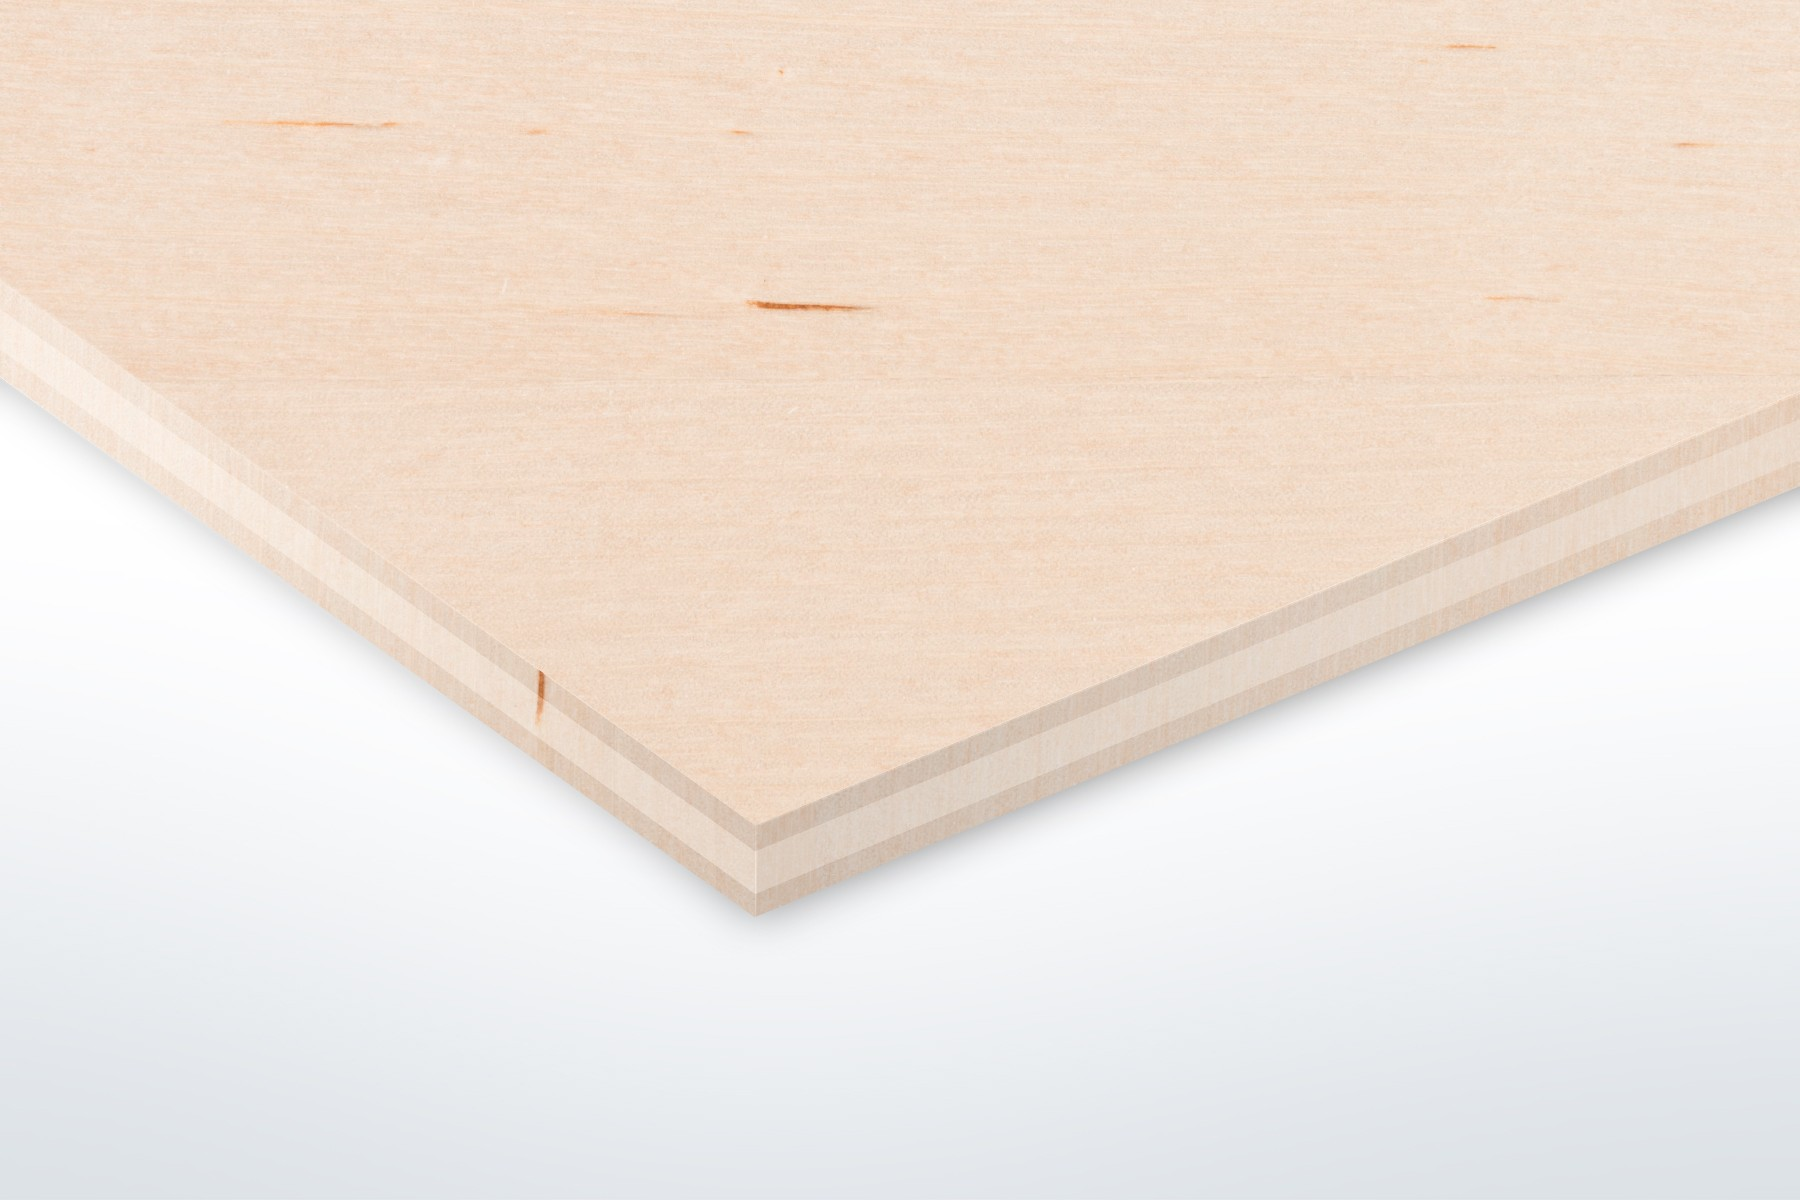 Plywood - 600 x 300mm - 3mm